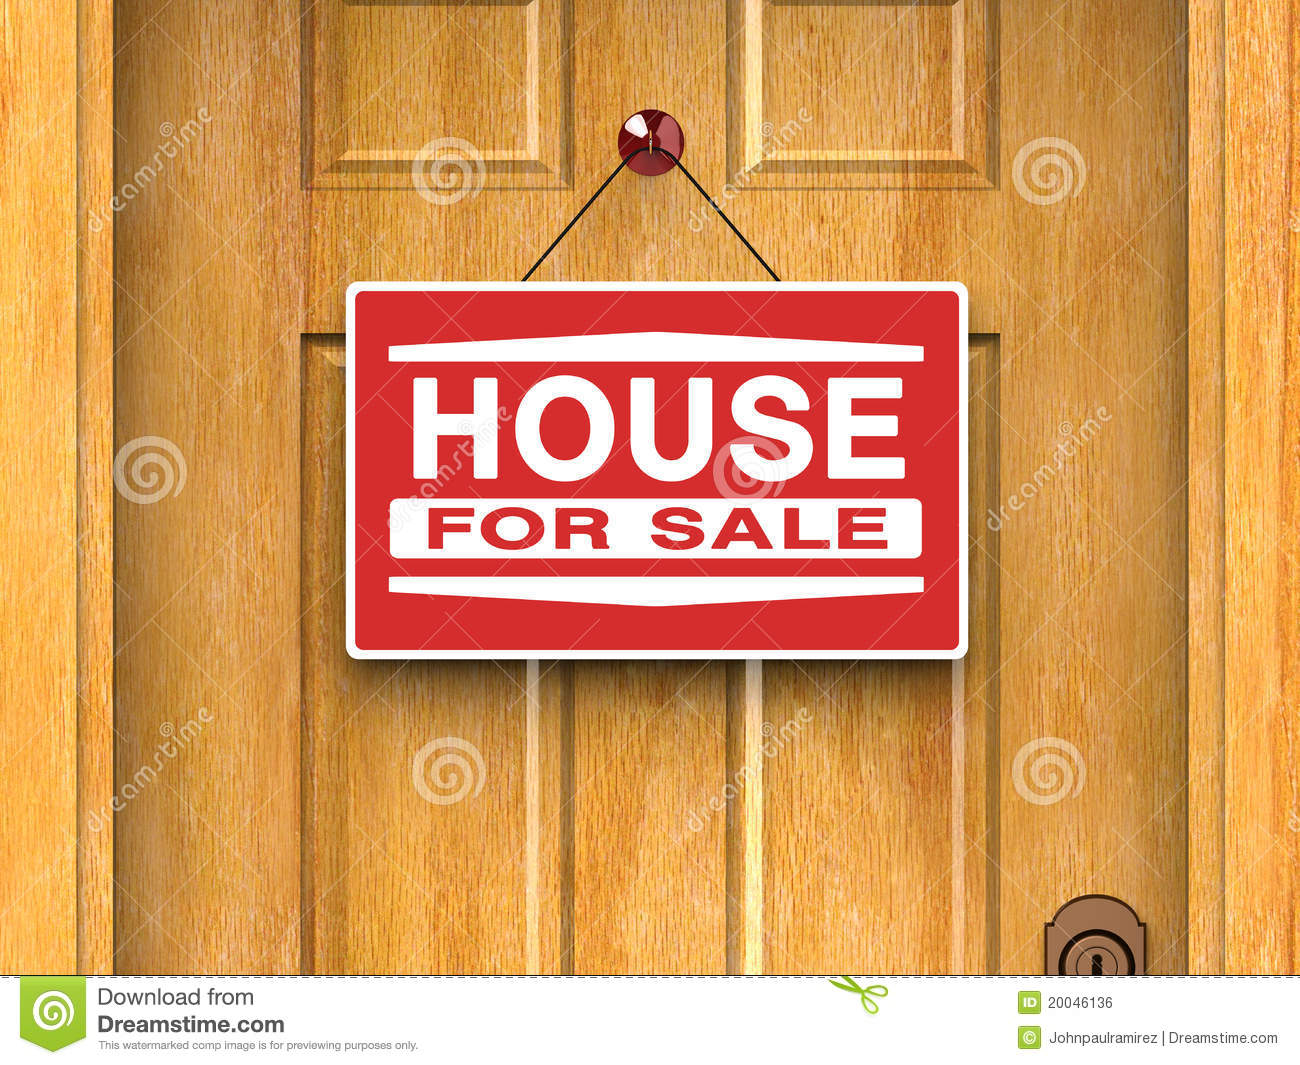 House For Sale, Real Estate, Home, Door Royalty Free Stock Image ...